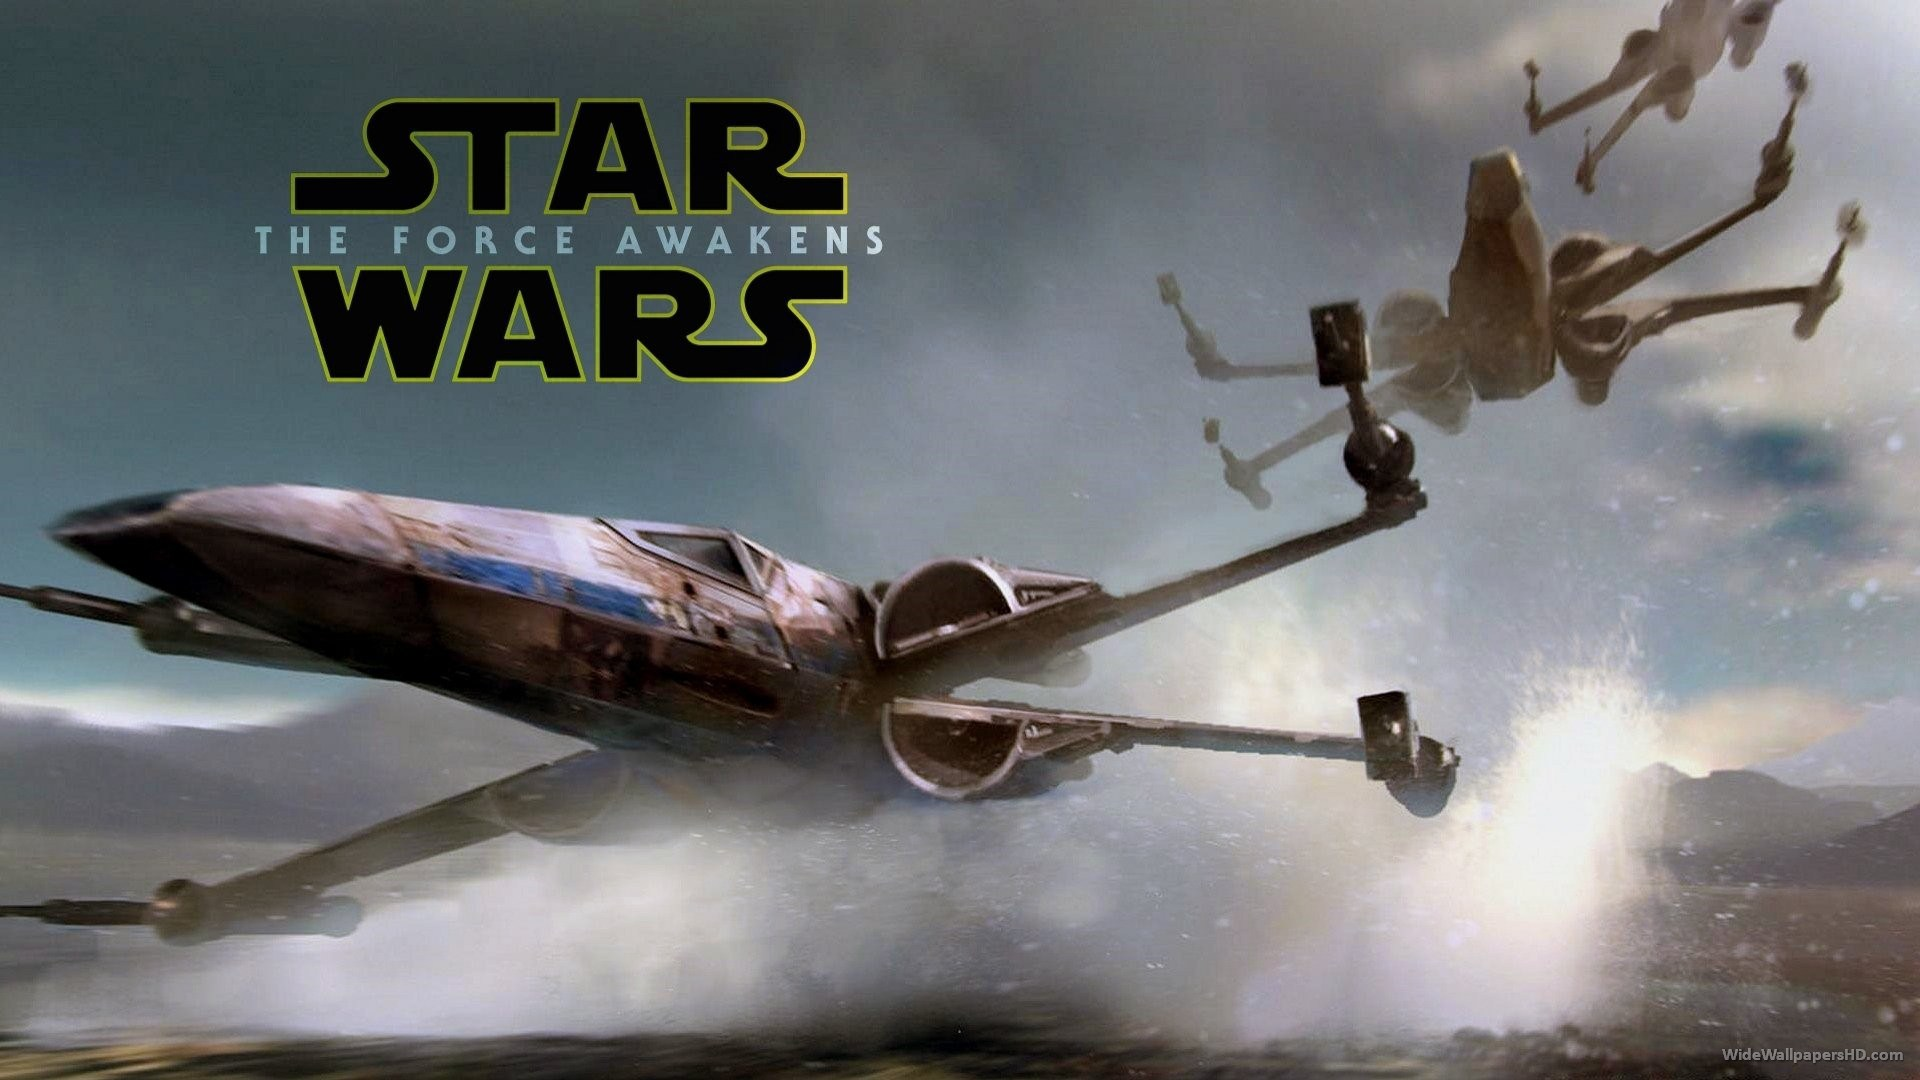 Star Wars The Force Awakens Photos Leak   Up Your Geek